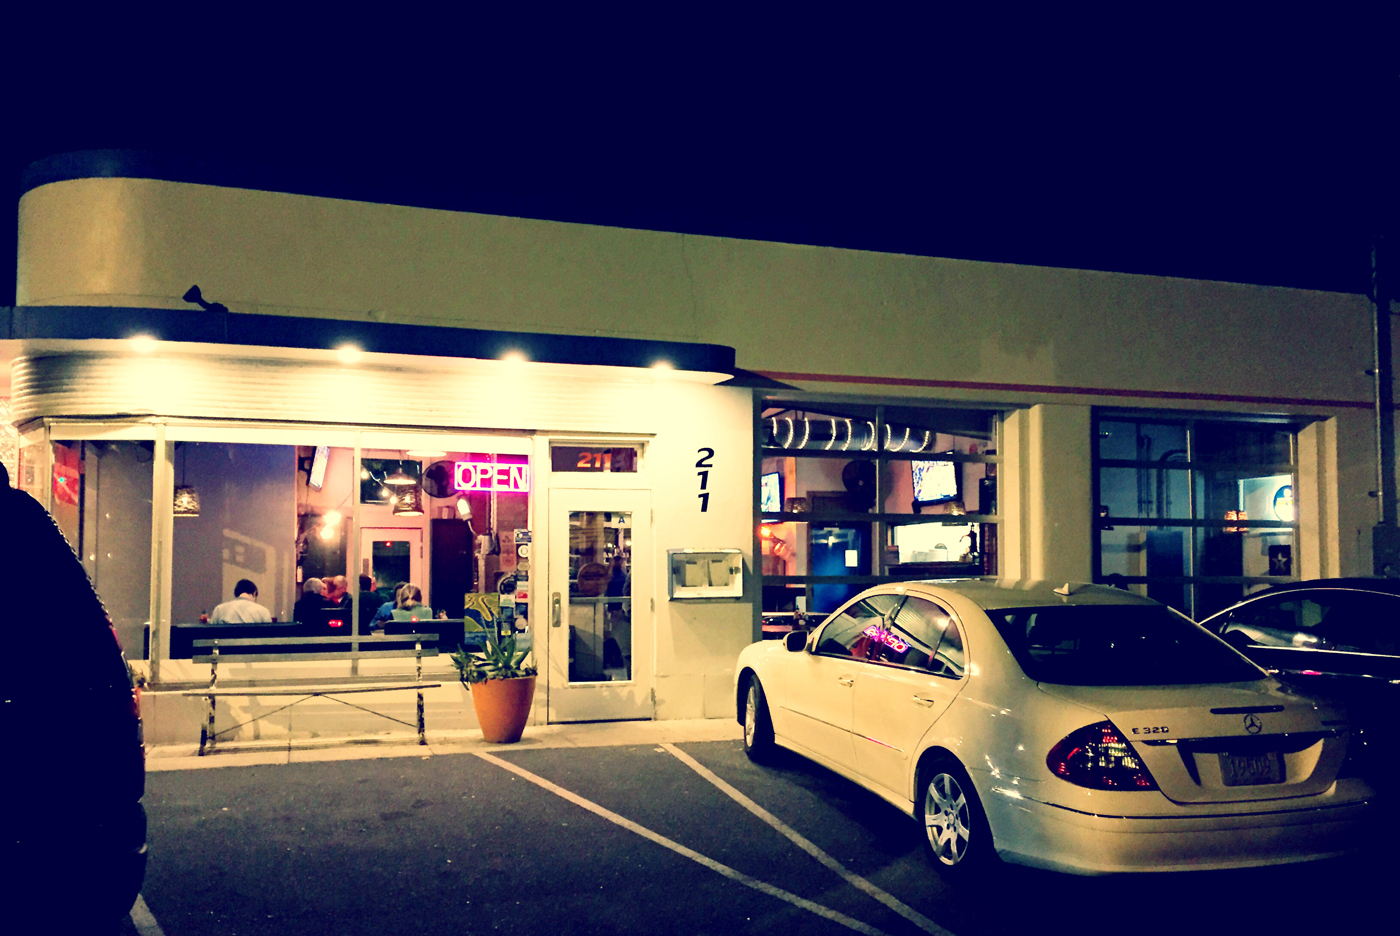 If you took out the modern vehicles, this photo could be taken from the 50's. This restaurant has that classic mid-century modern feeling. It looks like it was straight out of an Edward Hopper painting.